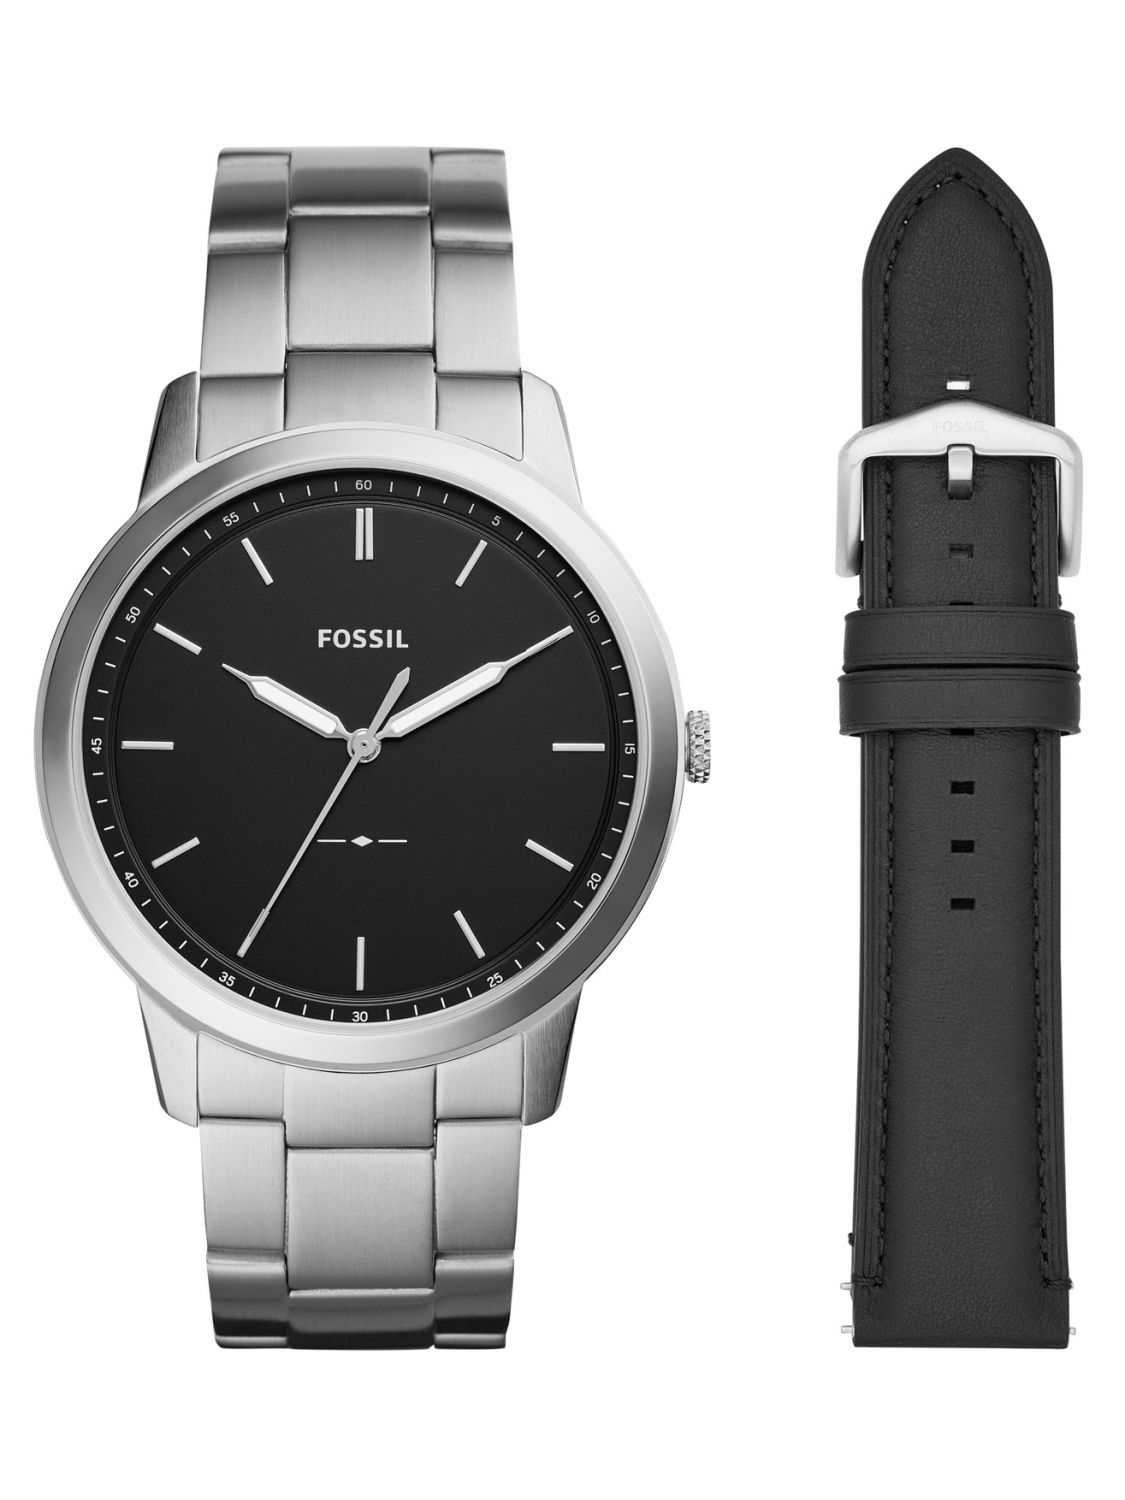 09f419370 Fossil FS5451SET Men's Watch with Replacement Strap The Minimalist Image ...